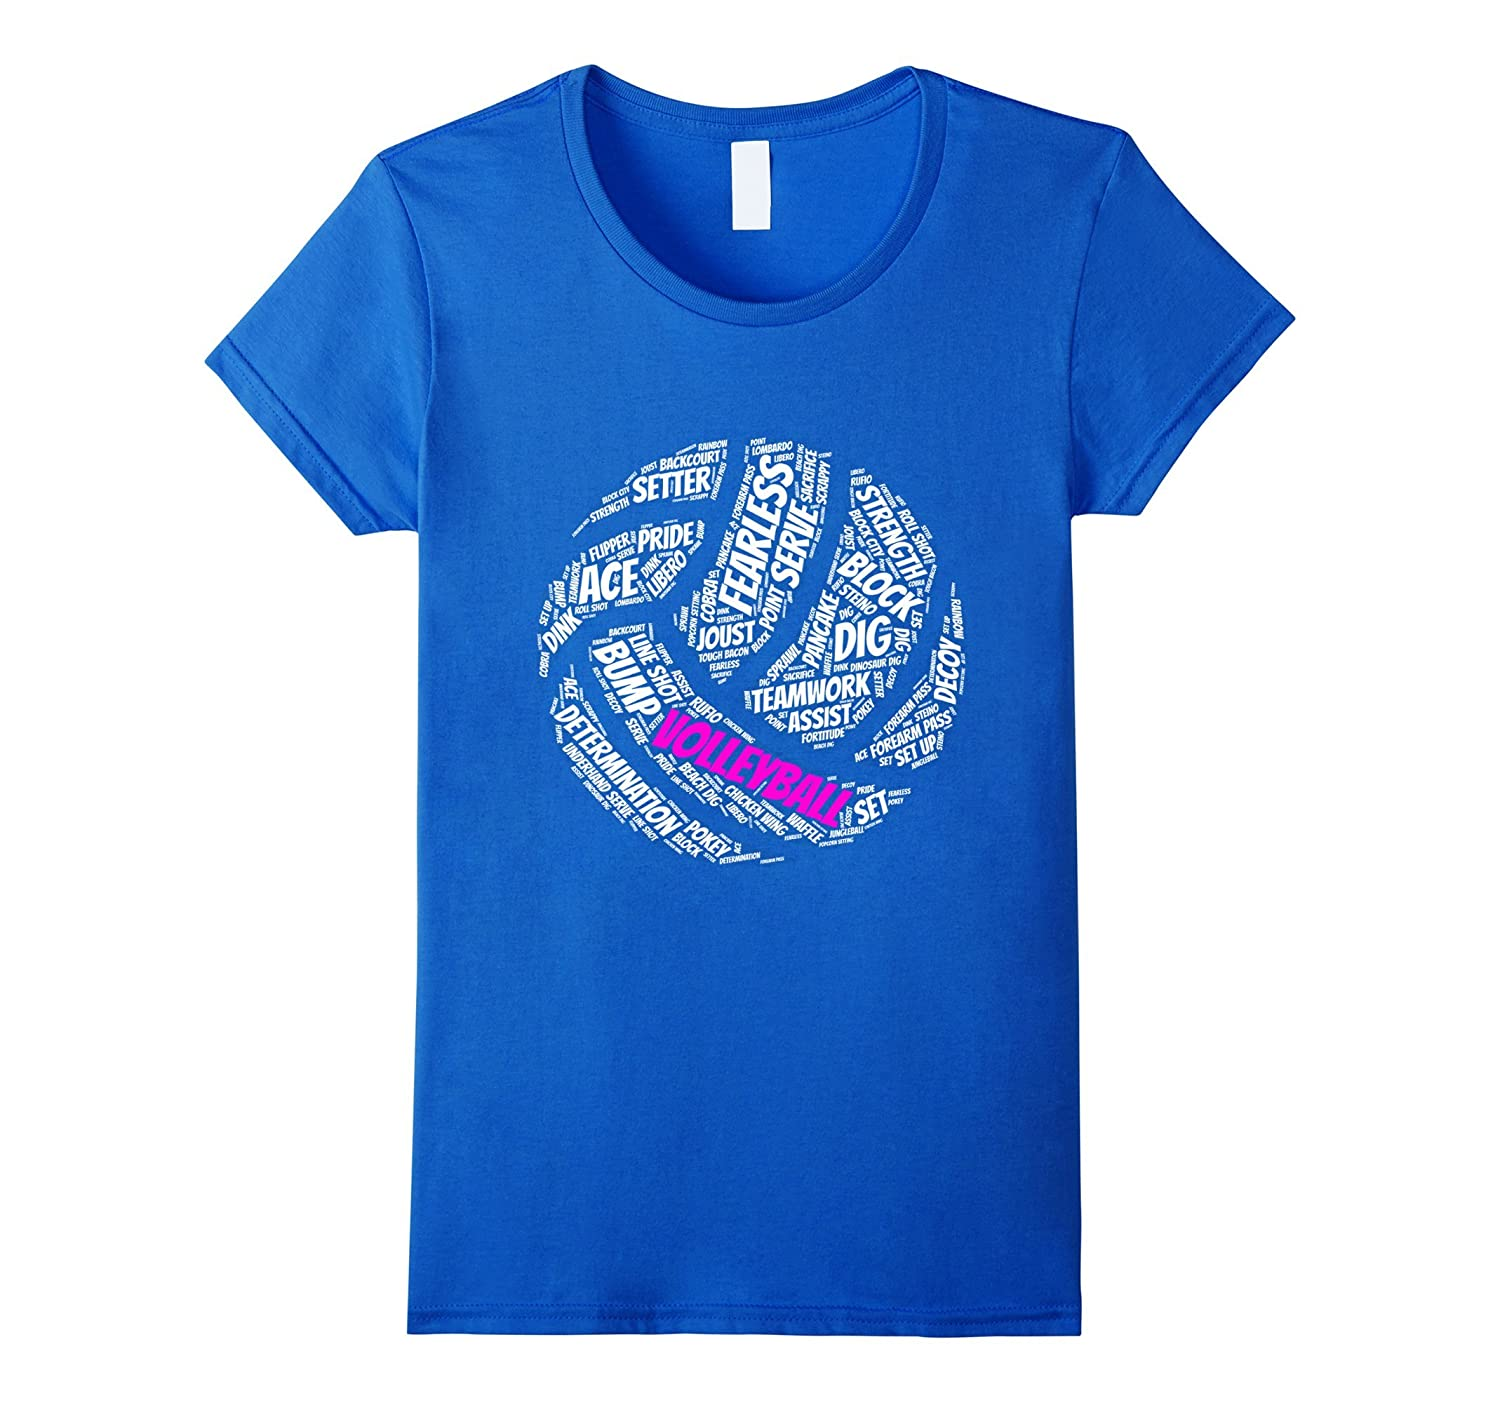 e24737b5e4c0 Kids Volleyball Apparel – Volleyball sayings shirt for girls-prm ...